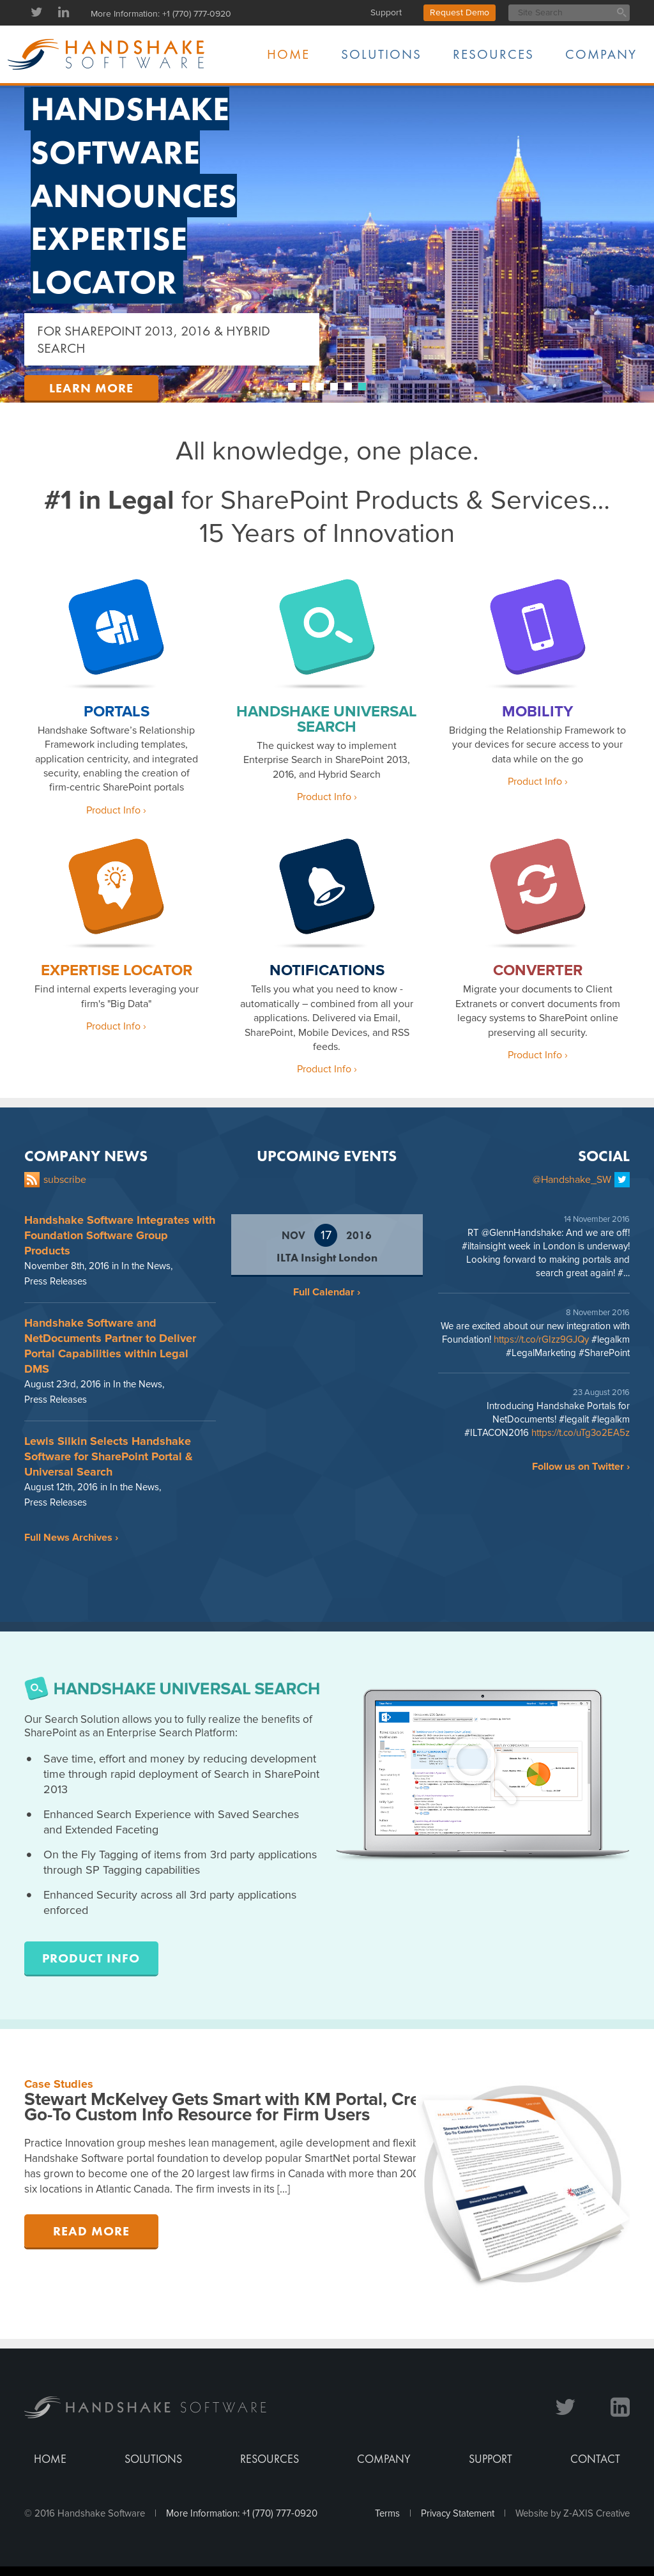 Handshake Software Competitors, Revenue and Employees